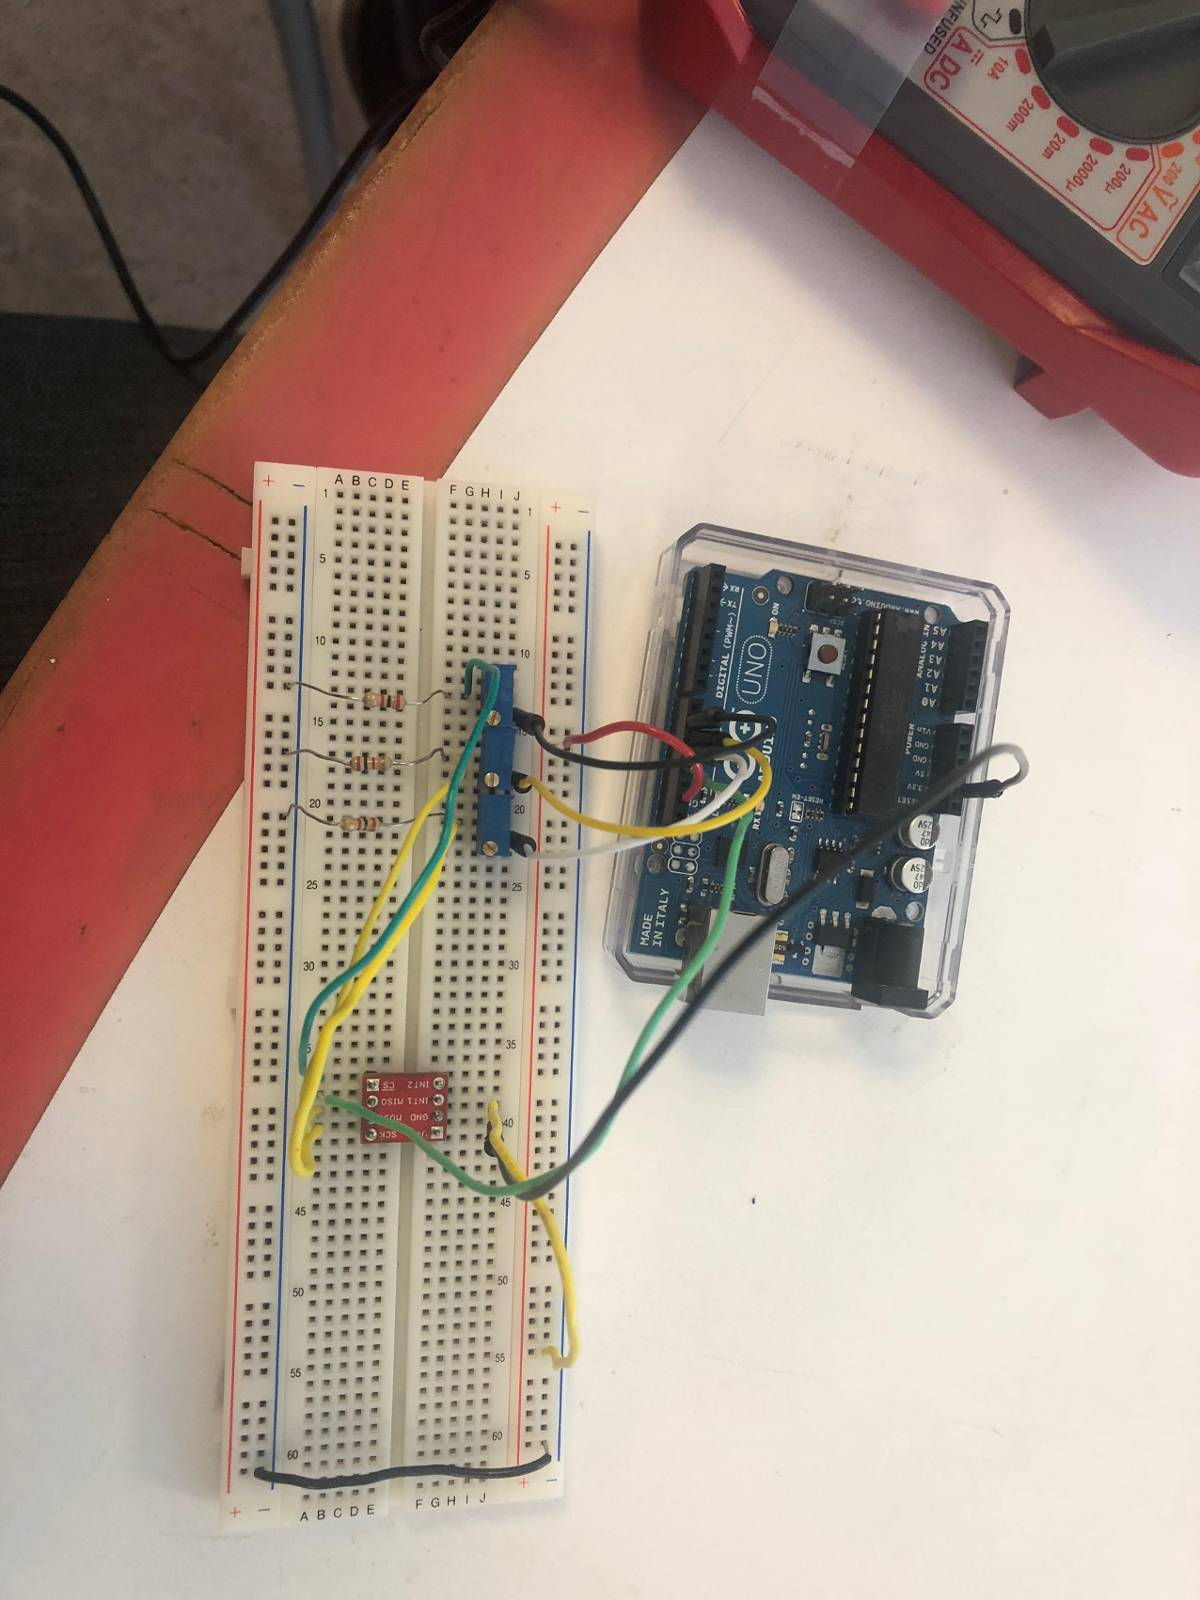 ADXL362 and Arduino Uno giving zero output for acceleration and temp